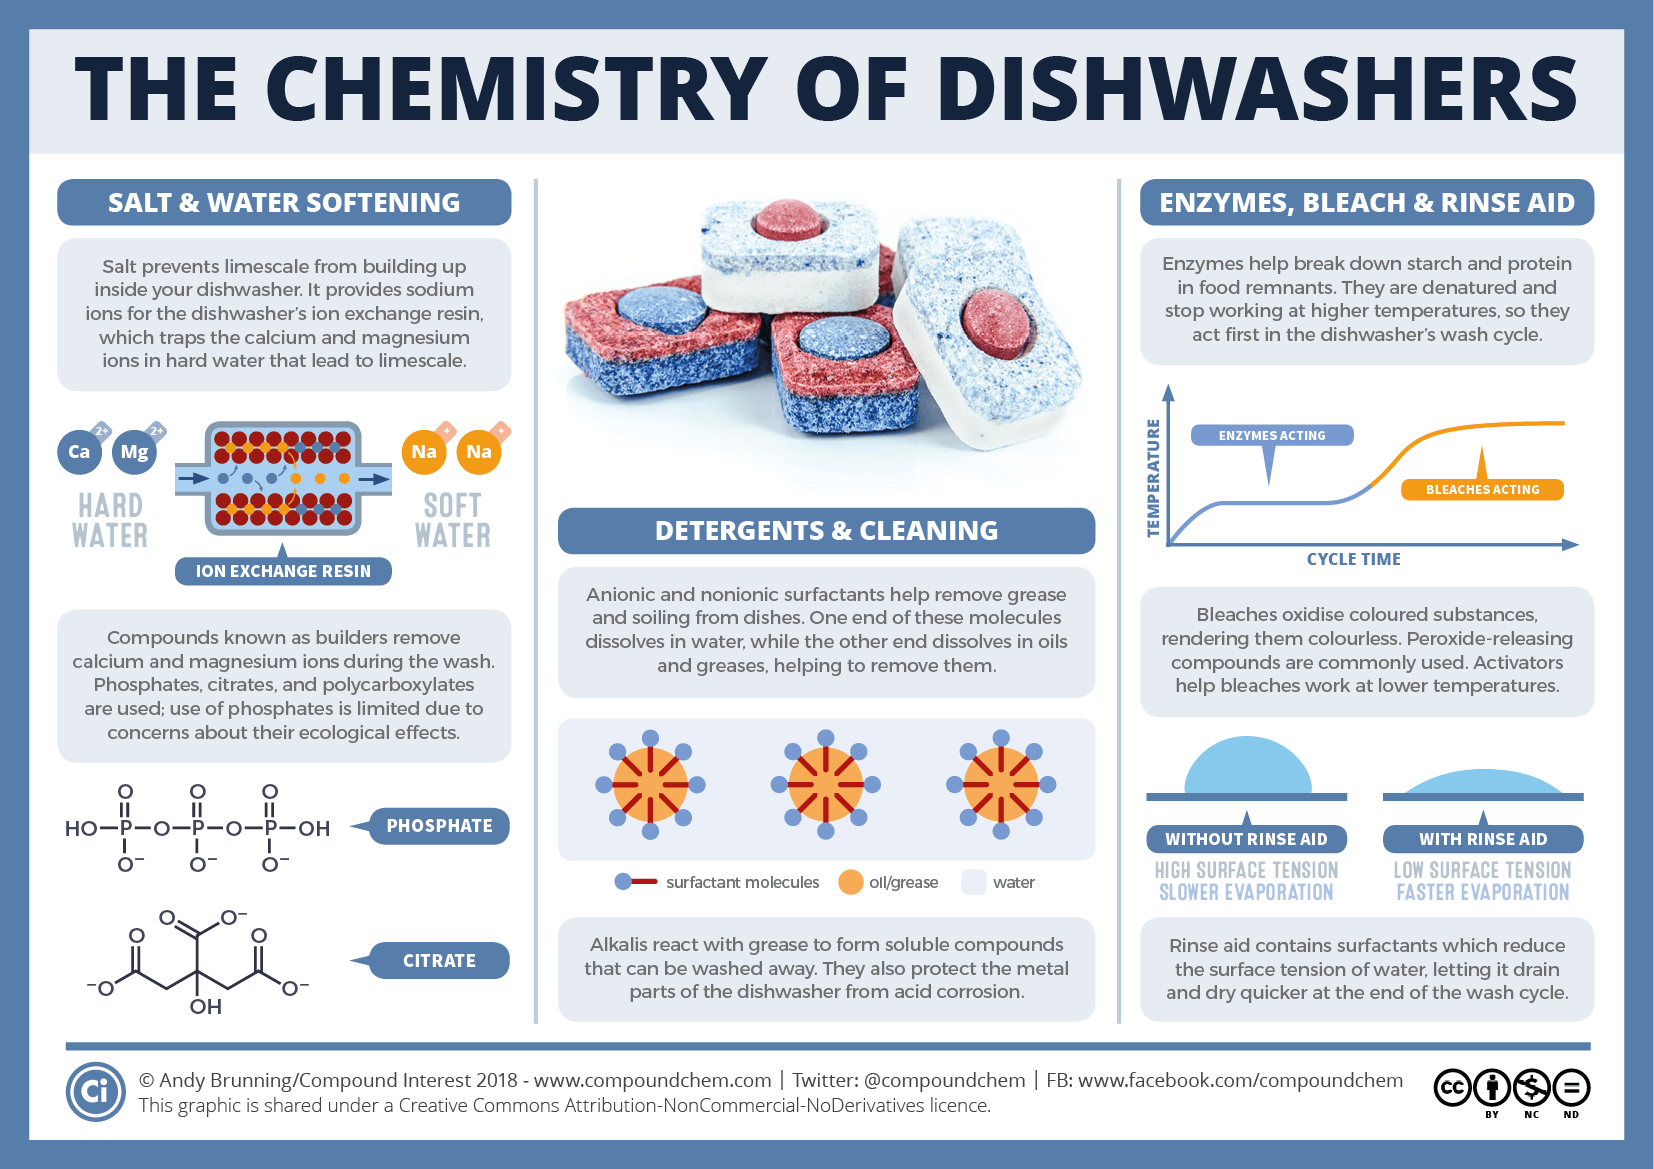 The chemistry of a dishwasher